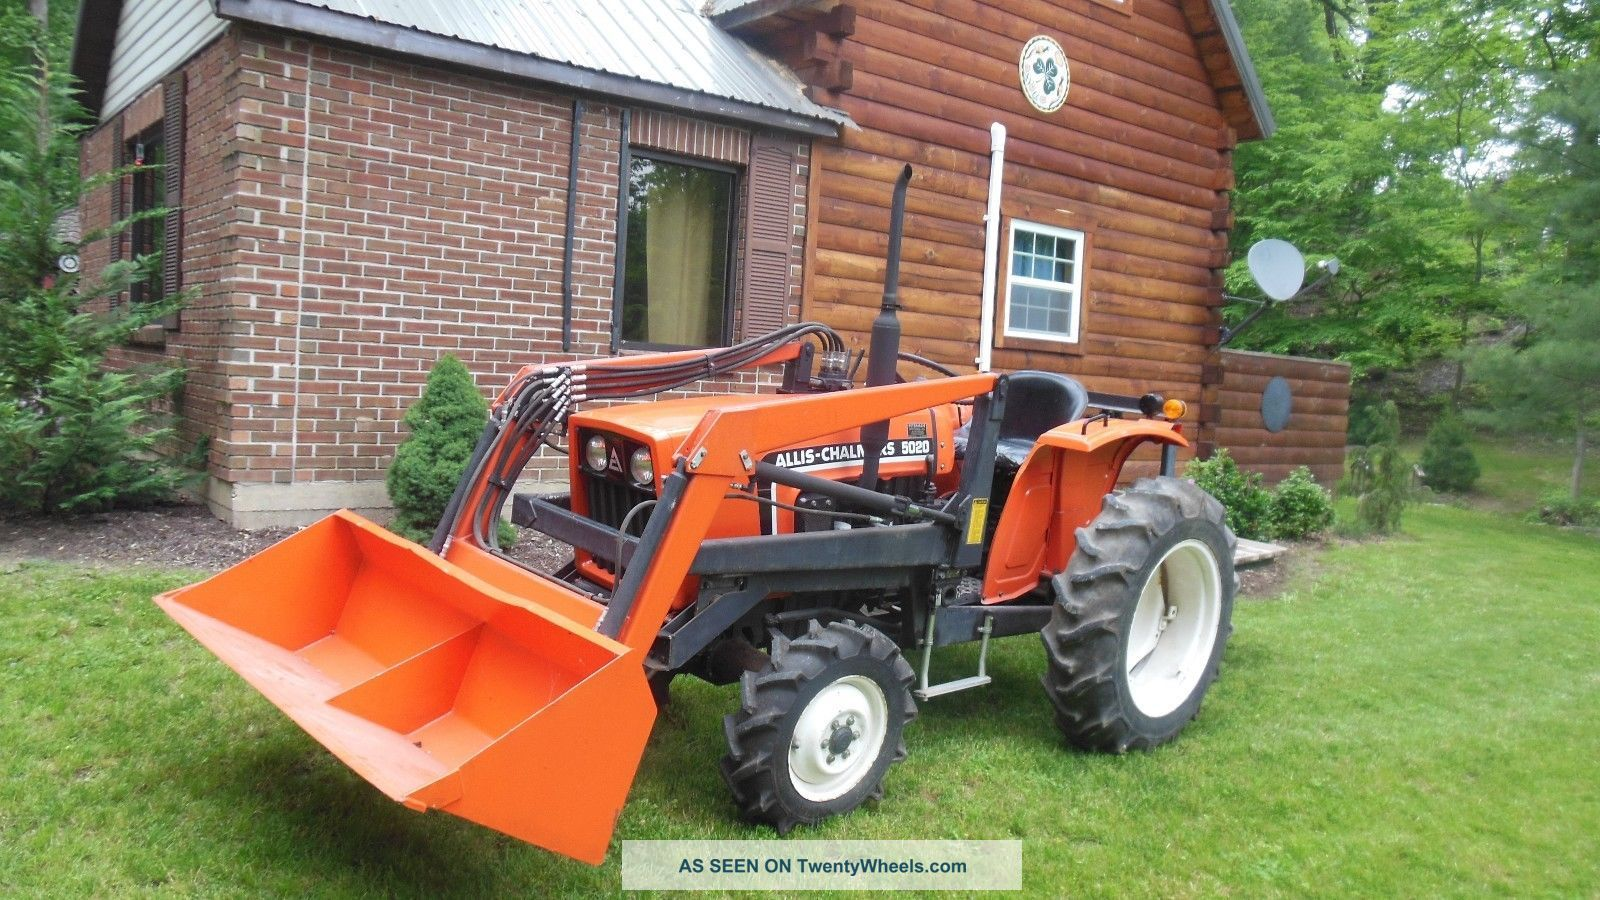 1984 Allis Chalmers 5020 Compact Diesel Tractor / 4 Wheel Drive / 336 Hours Equipment photo